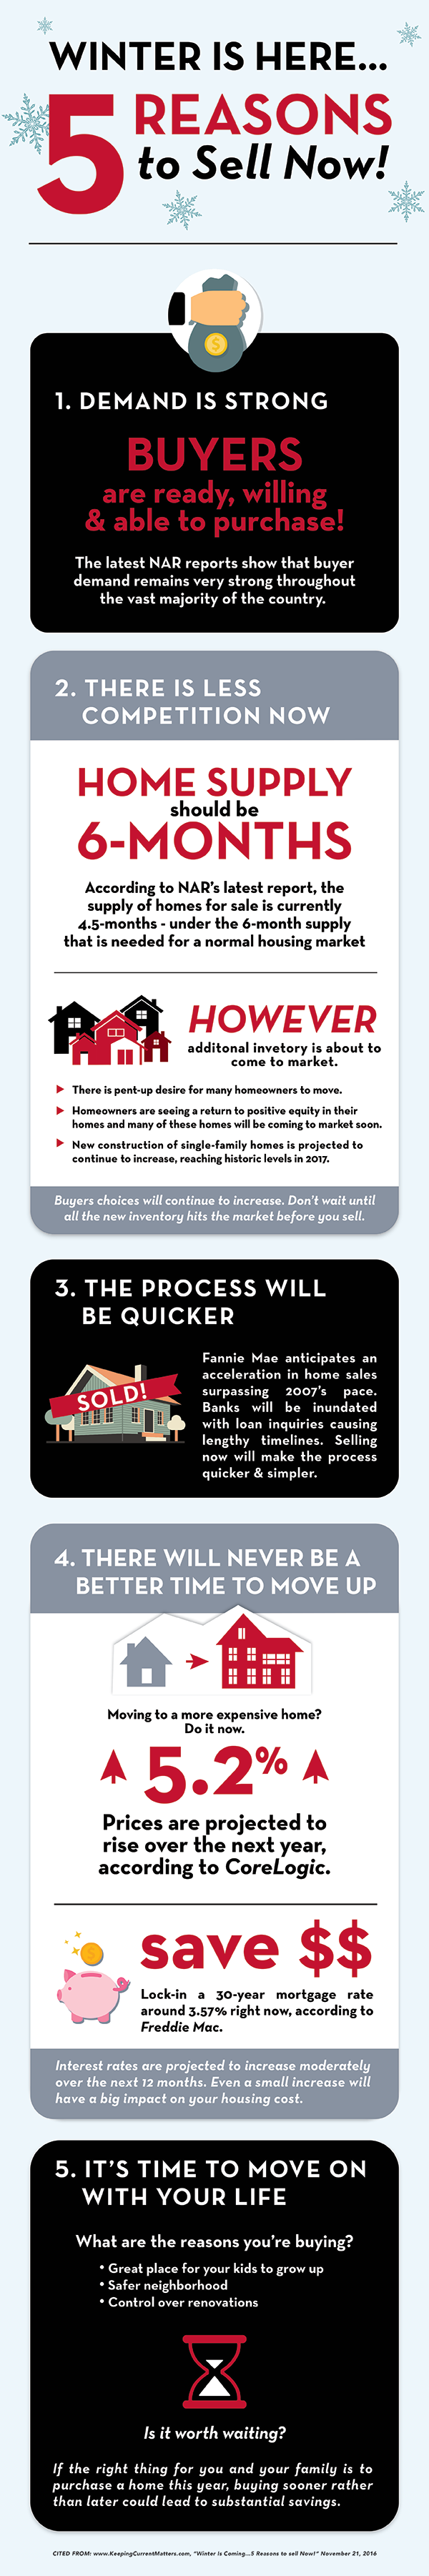 5ReasonsToSellNow_Infographic